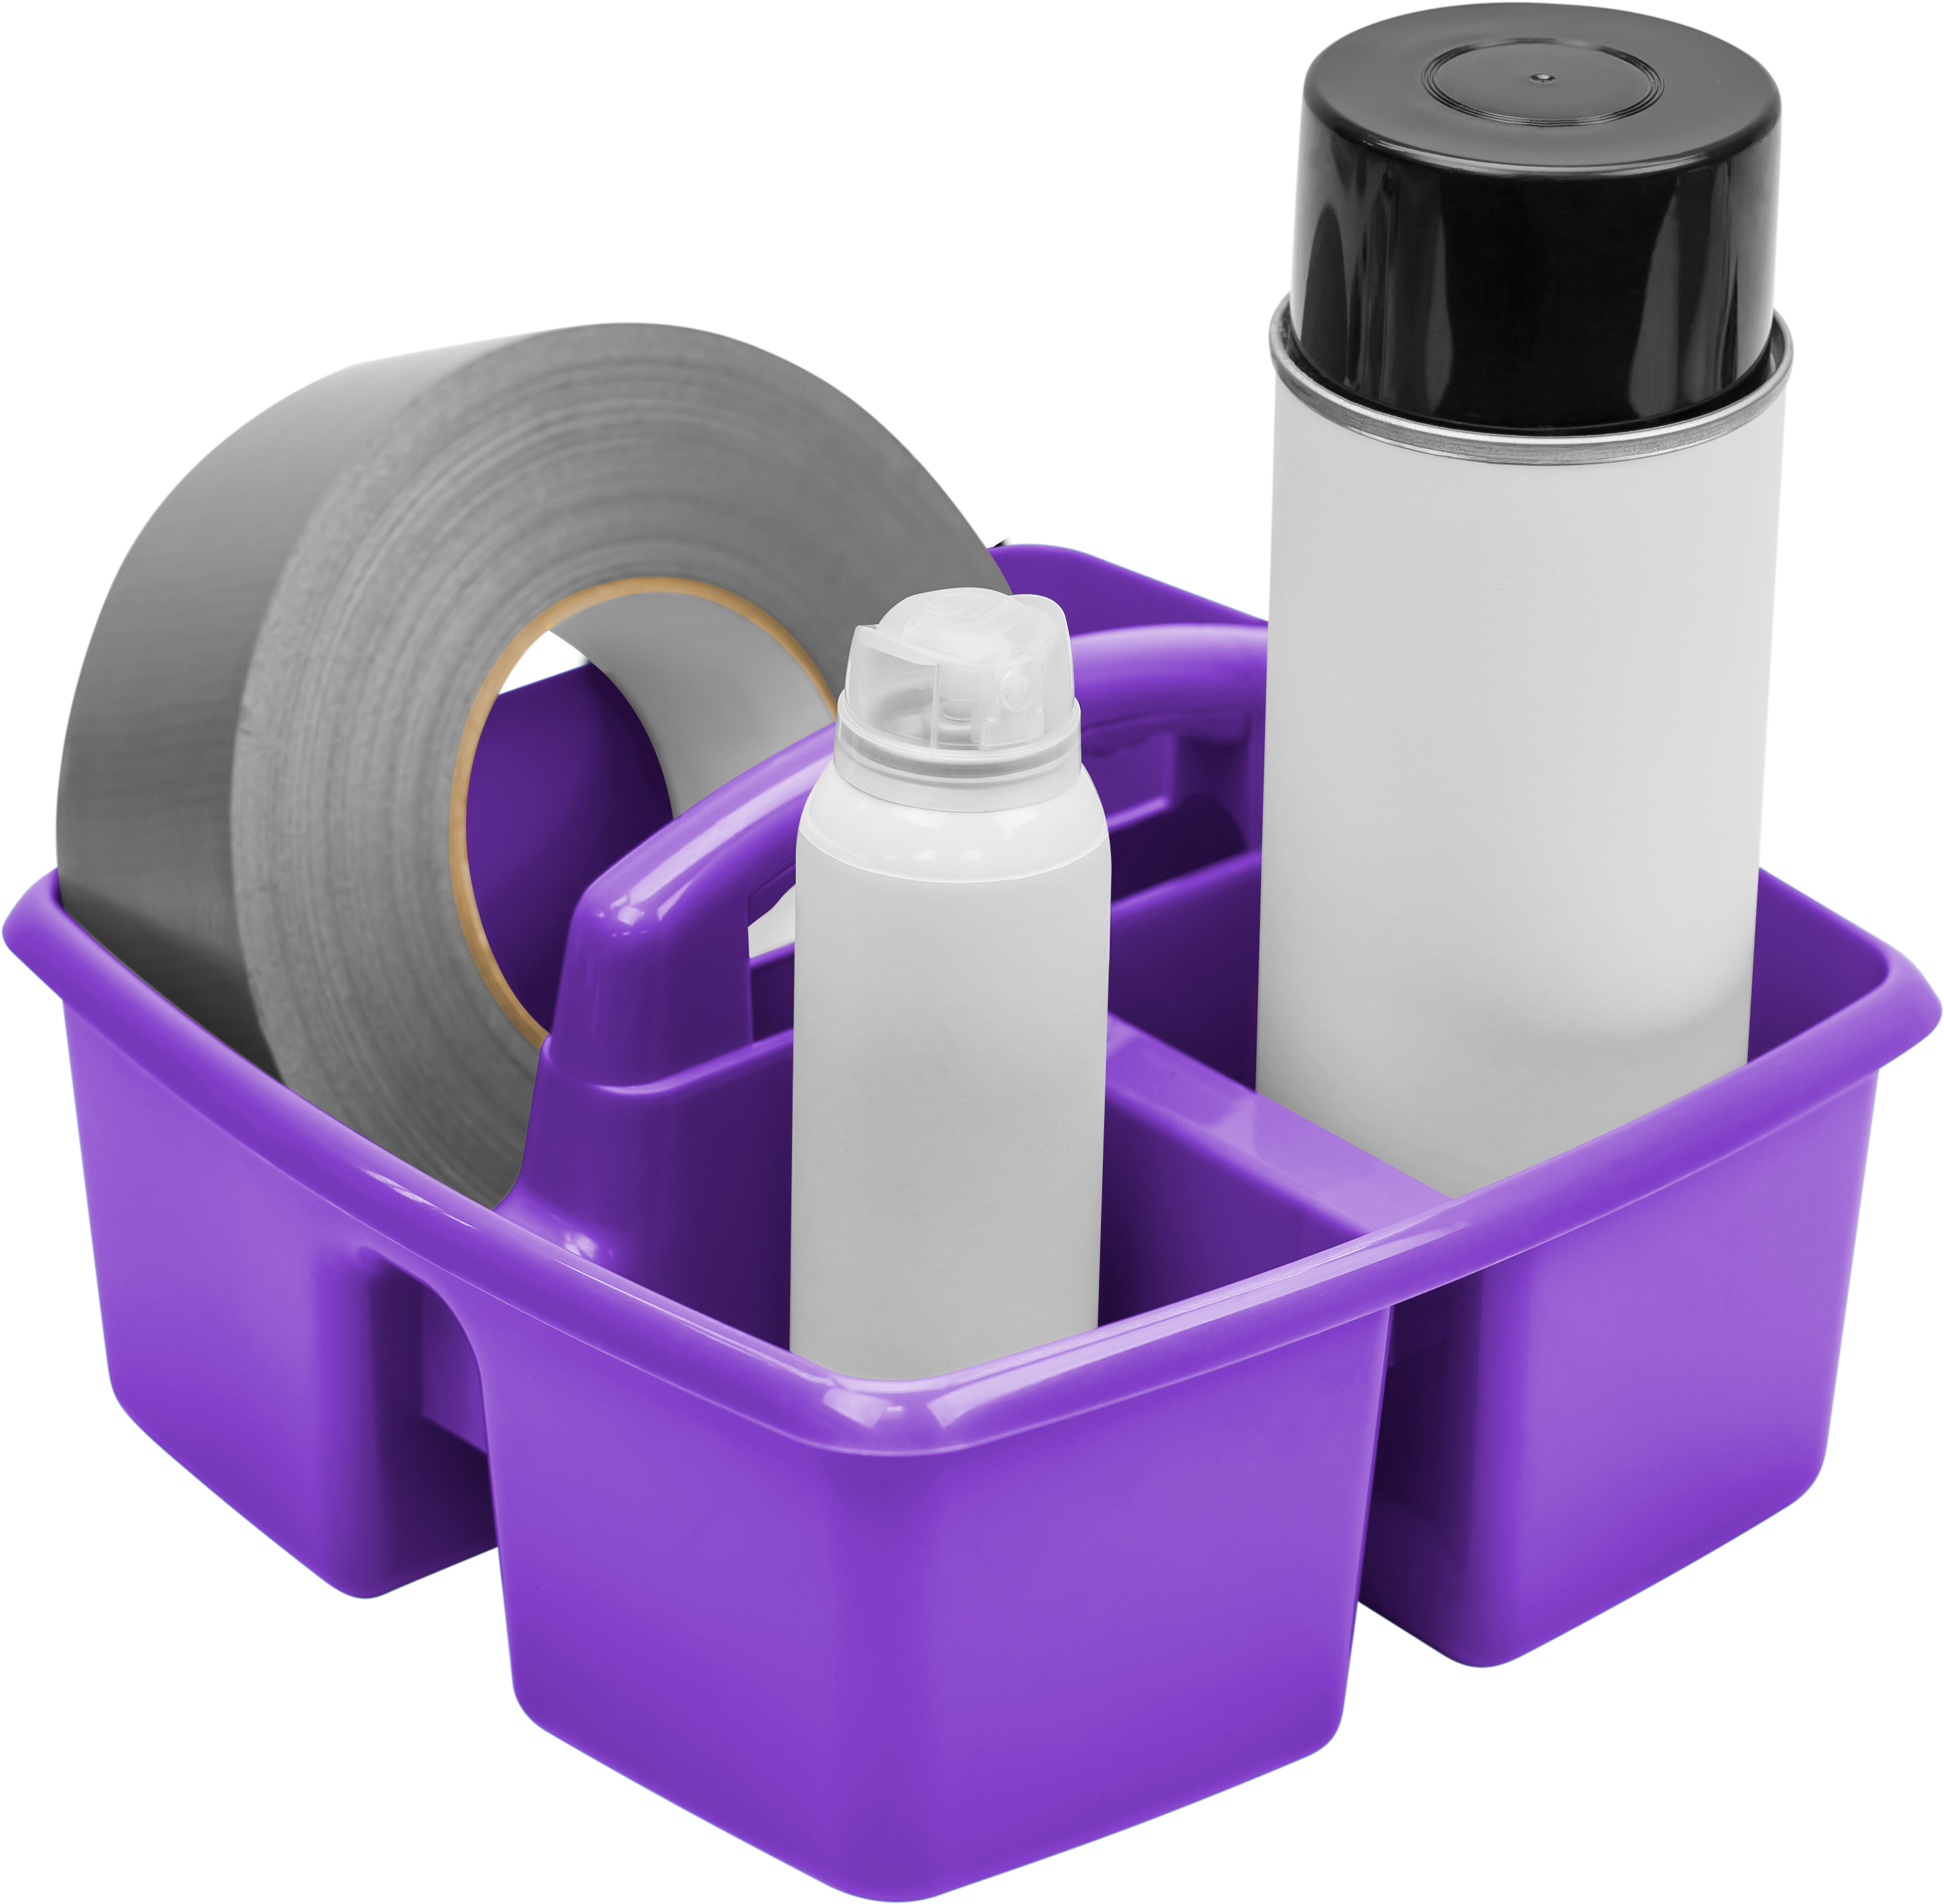 Storex Industries Classroom Art and Supplies Caddy, Multiple Color Options(6 units/pack)